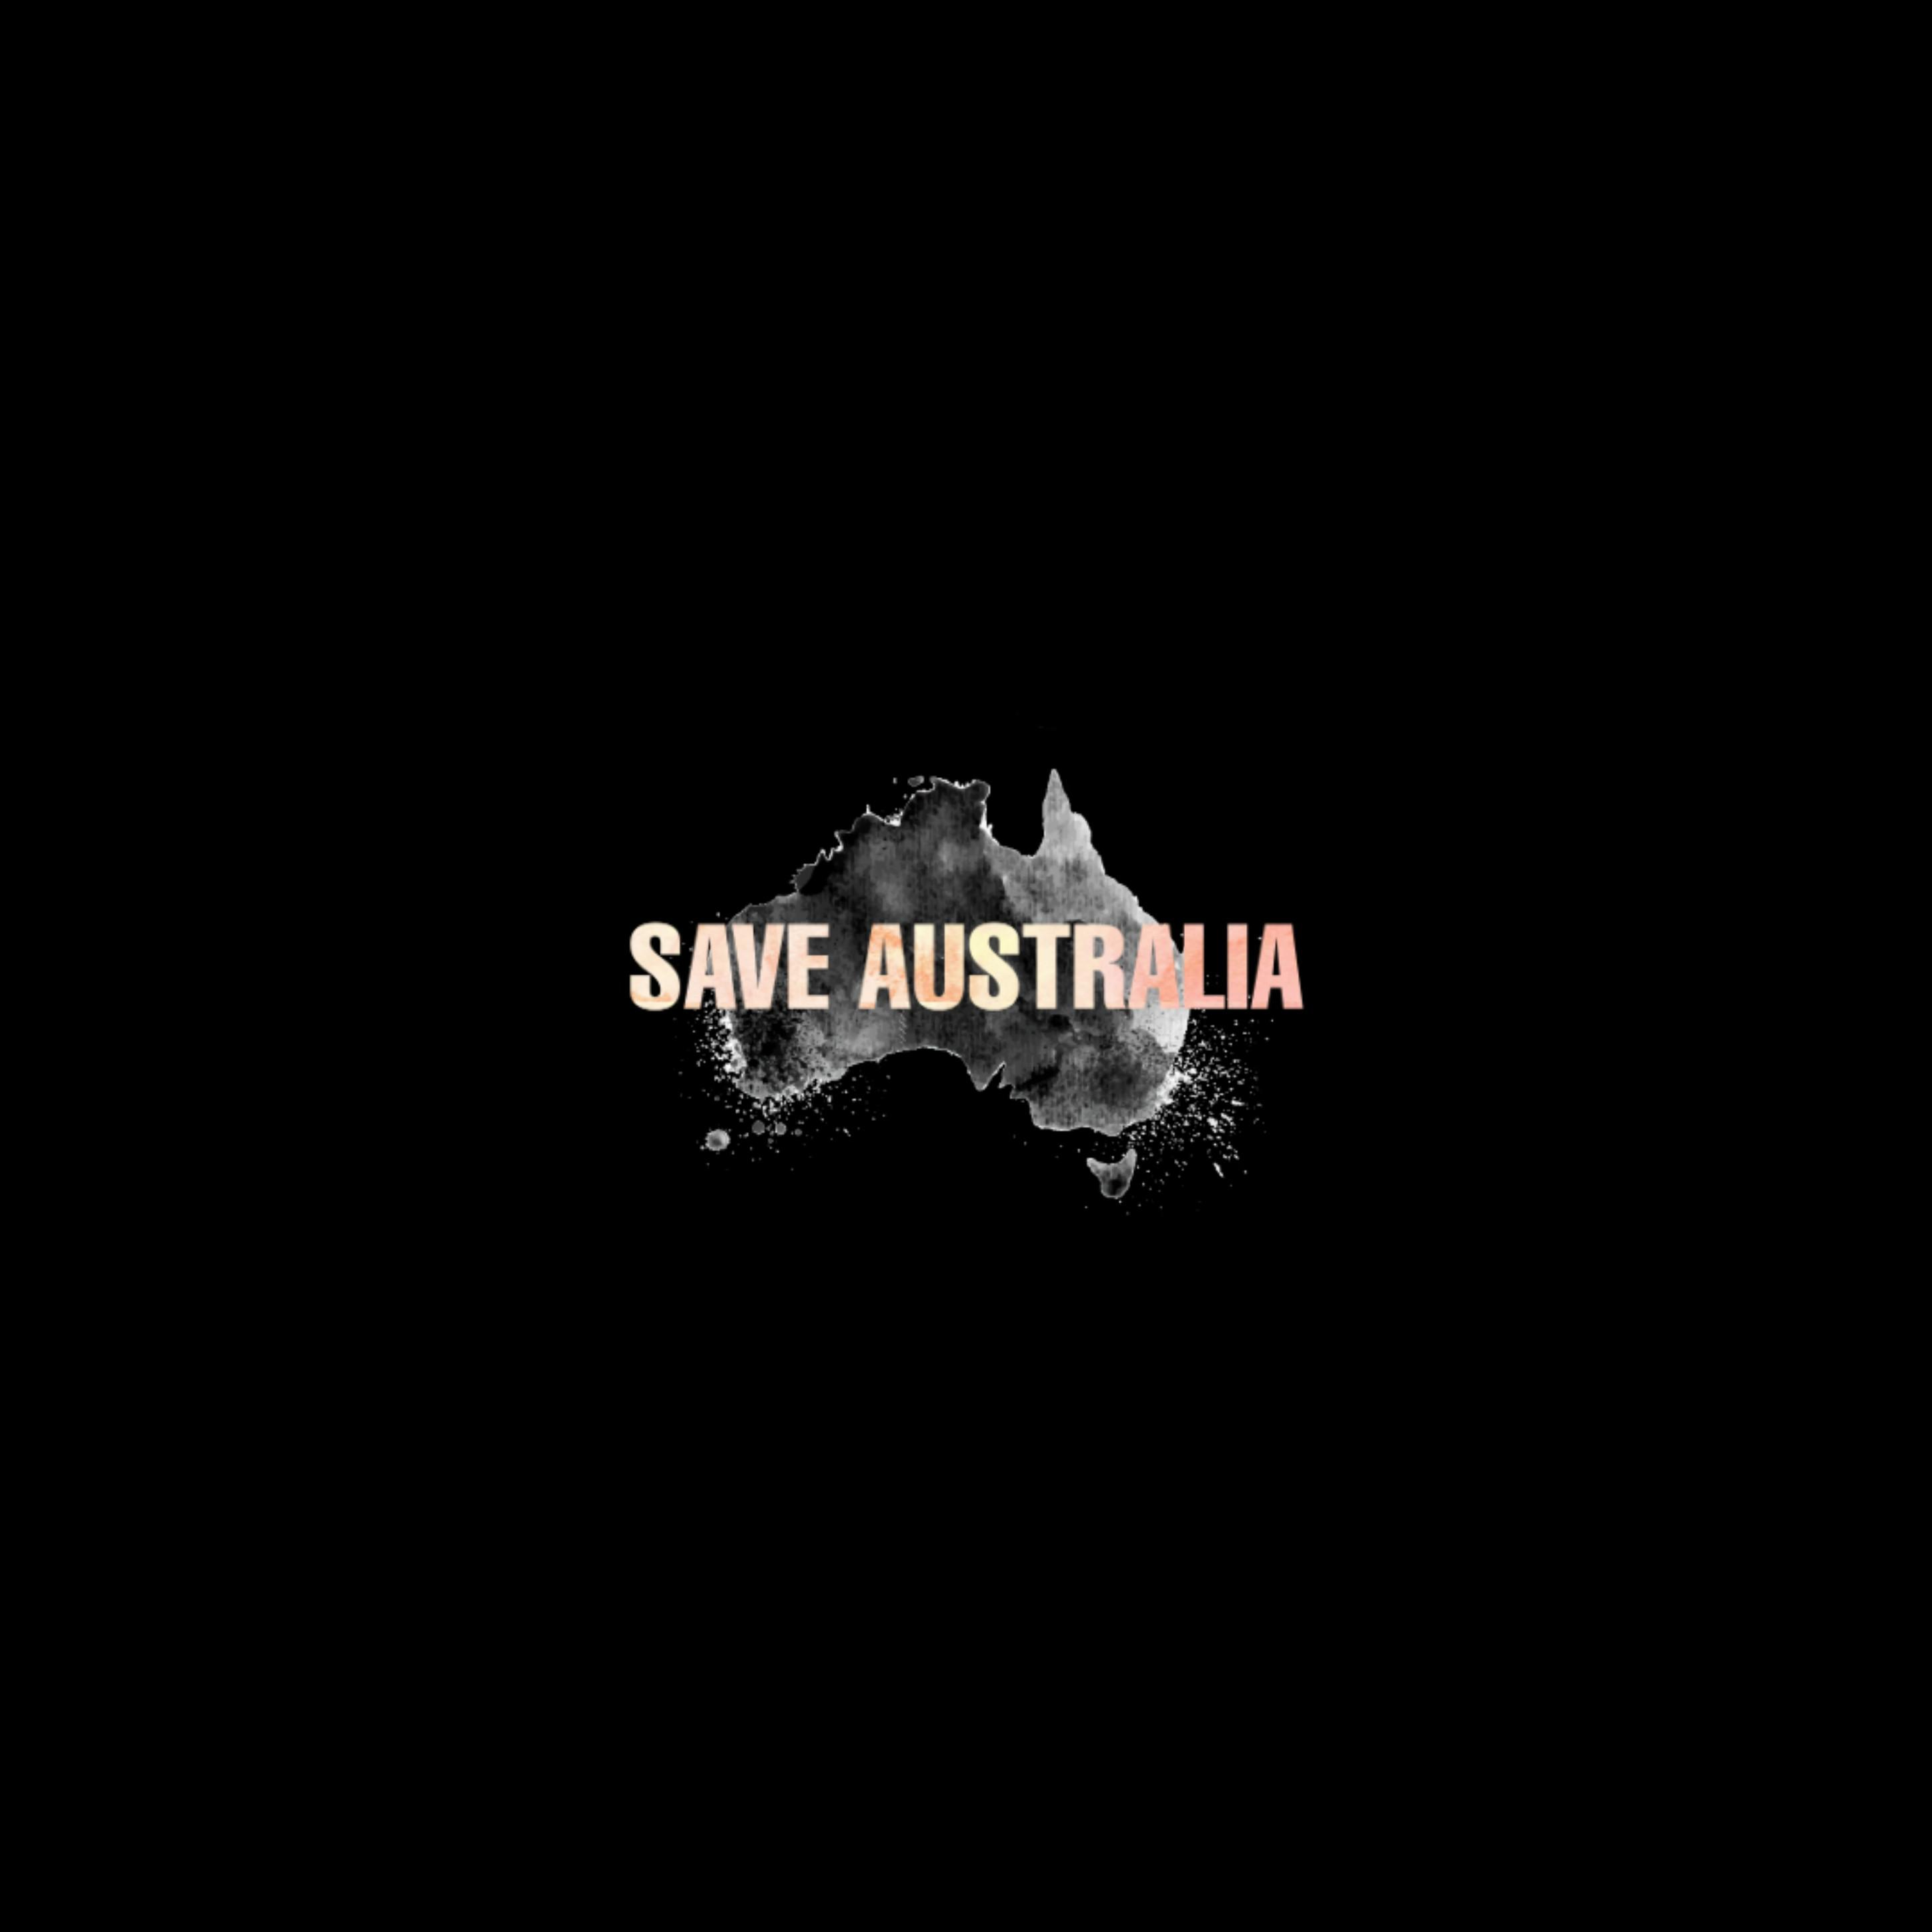 Save Australia Hd Wallpaper